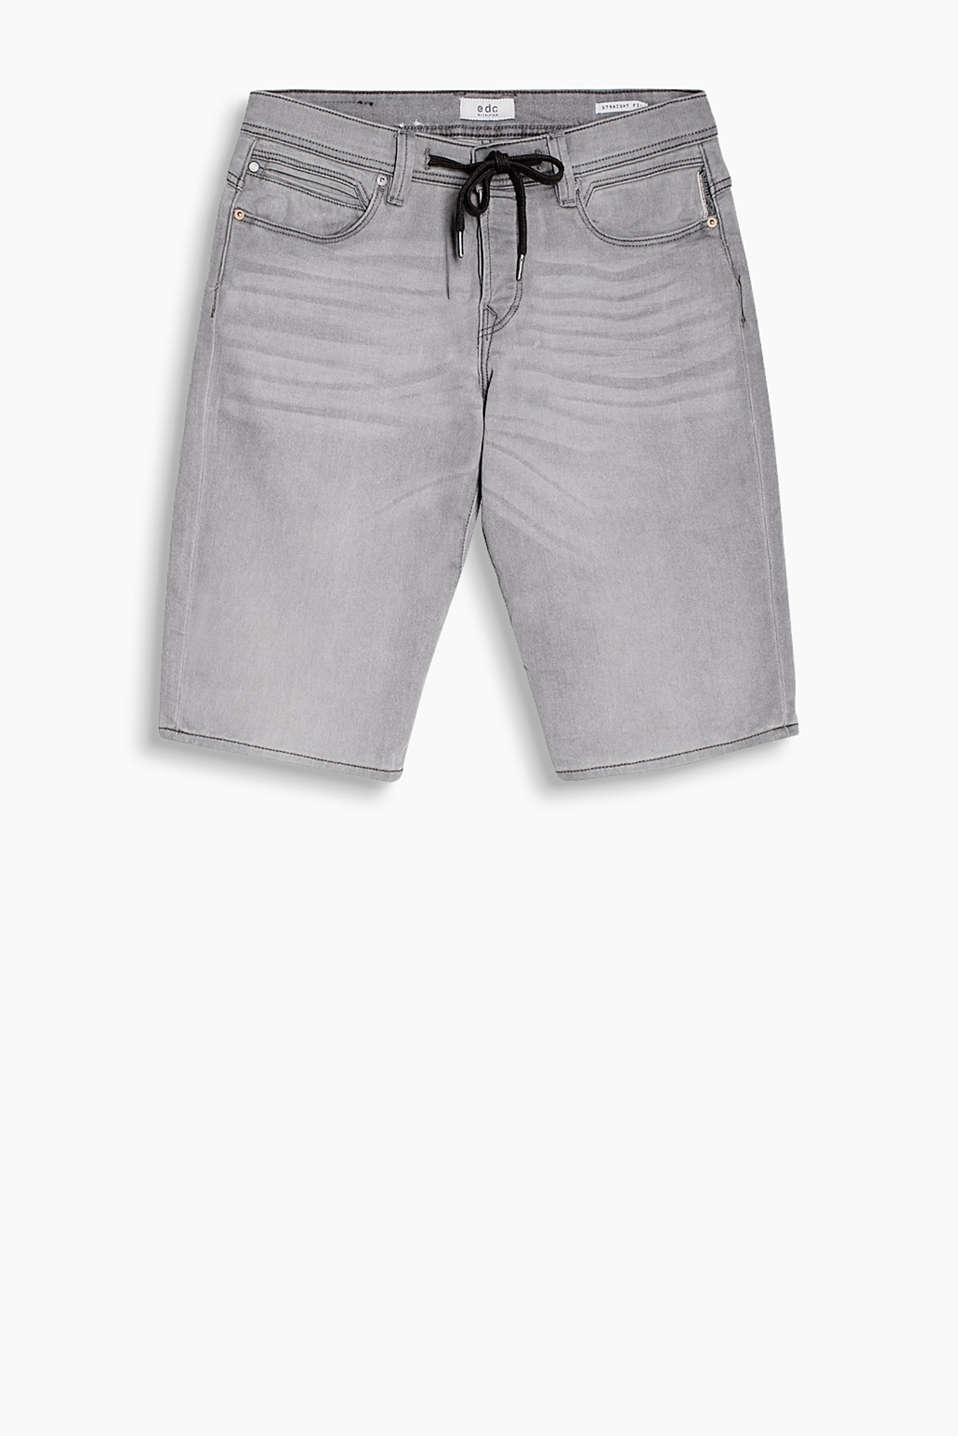 Im Jogg-Pants-Look: Bermuda-Short aus super-leichtem Stretch-Denim